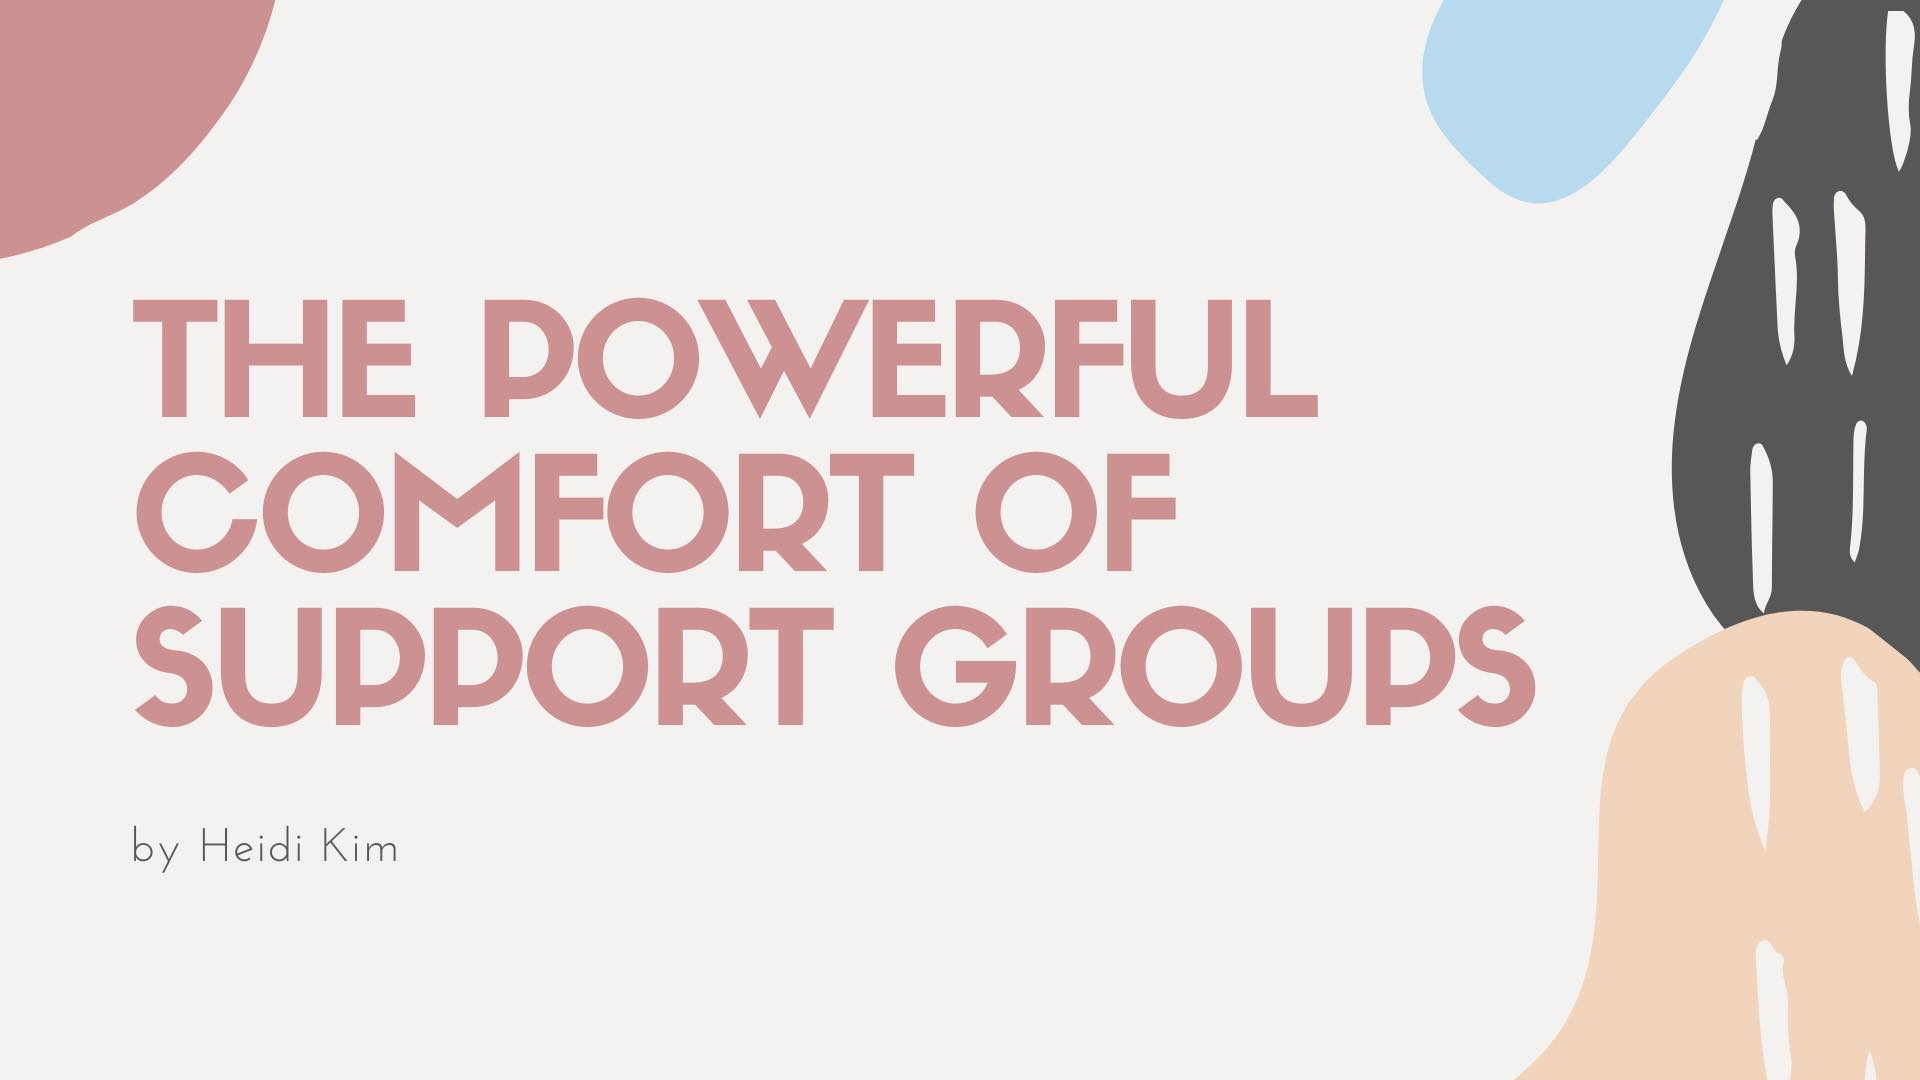 The Powerful Comfort of Support Groups